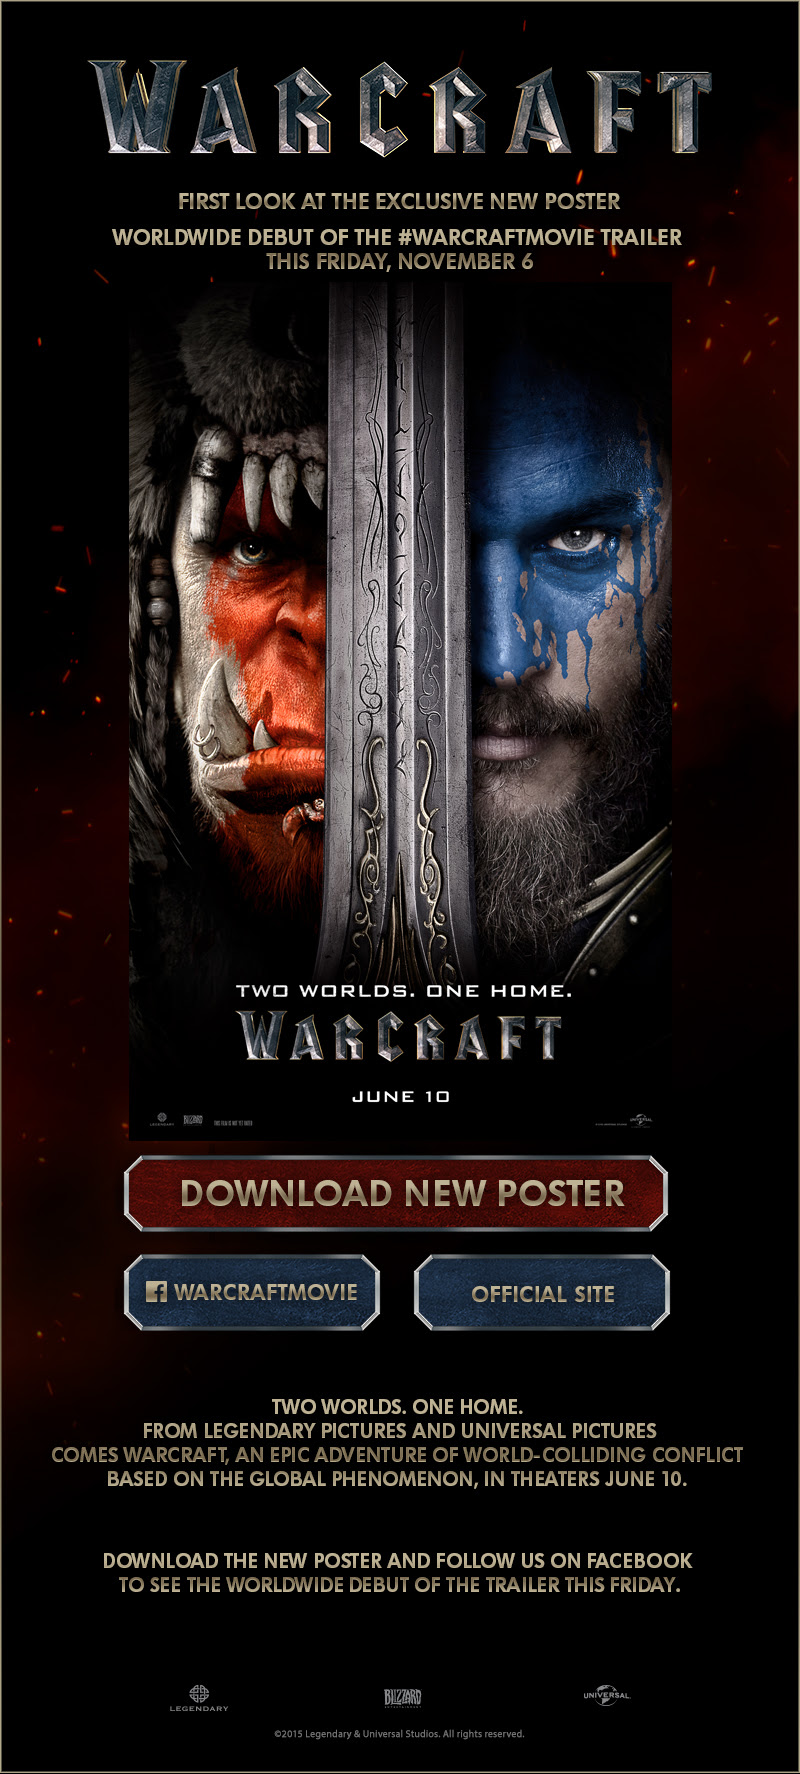 Warcraft - Poster First Look - Trailer Premieres This Friday